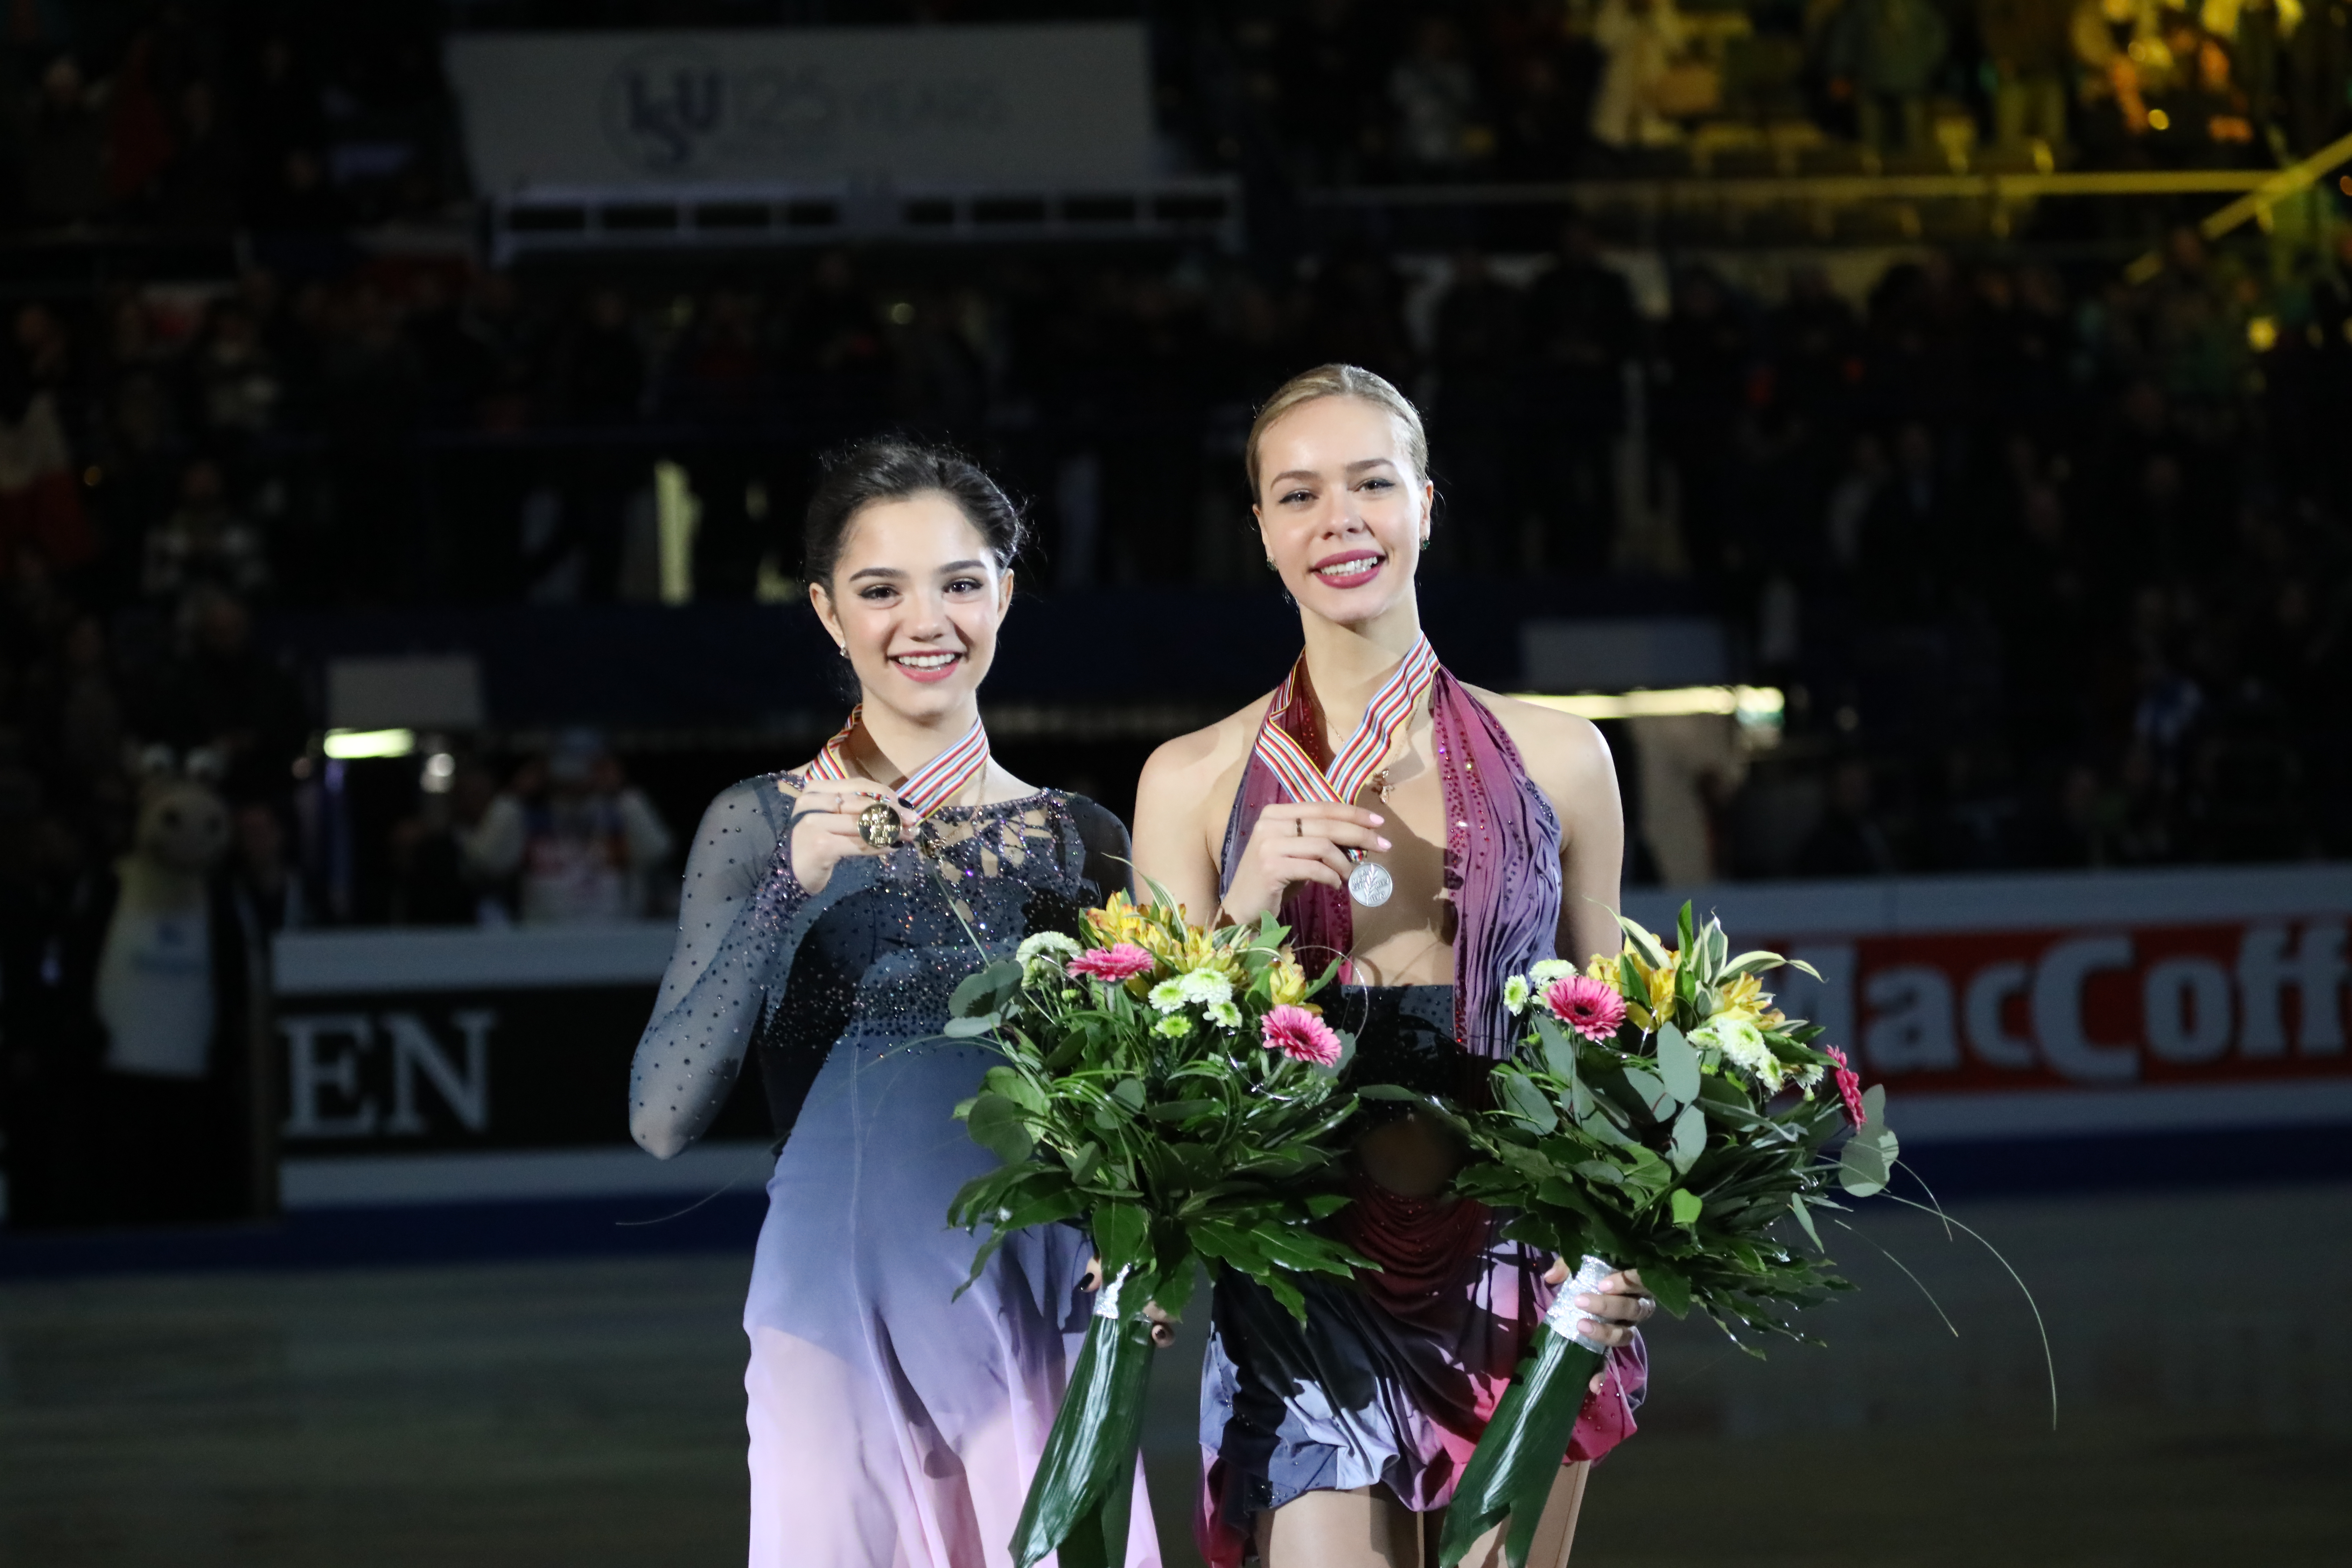 MacCoffee is the Official Sponsor of  European Figure Skating Championships 2017